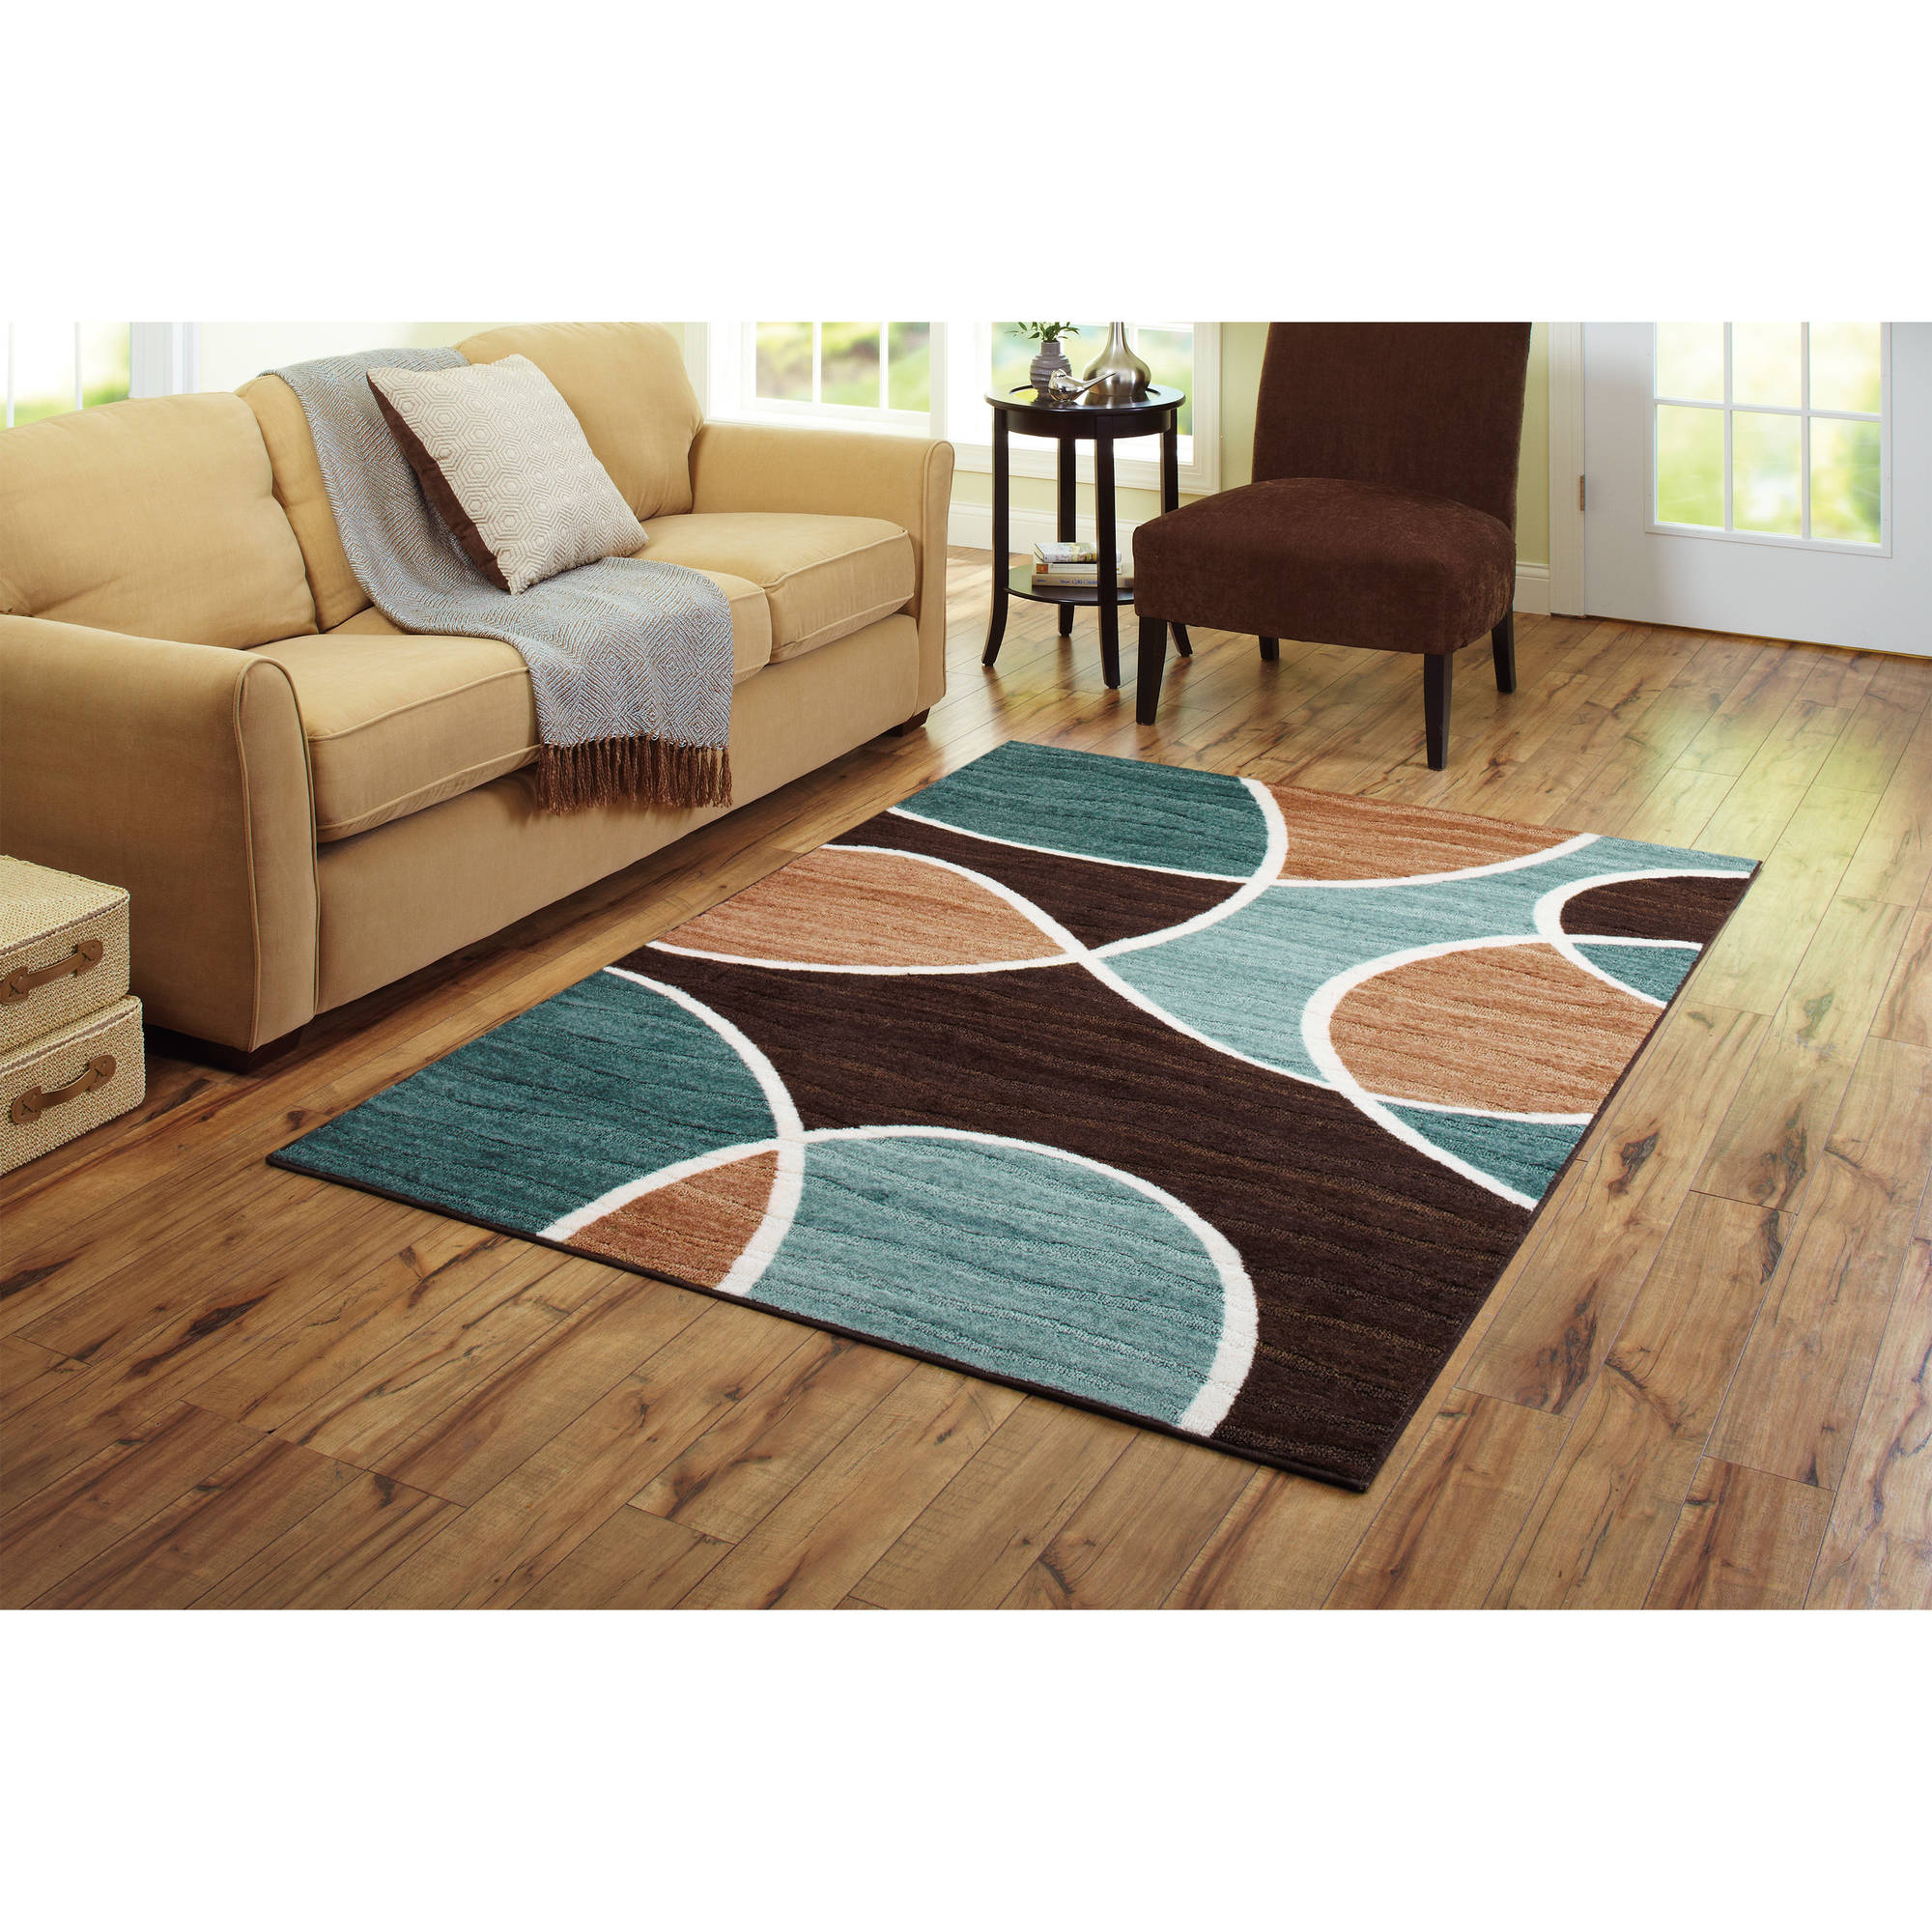 better homes and gardens geo waves area rug or runner - walmart